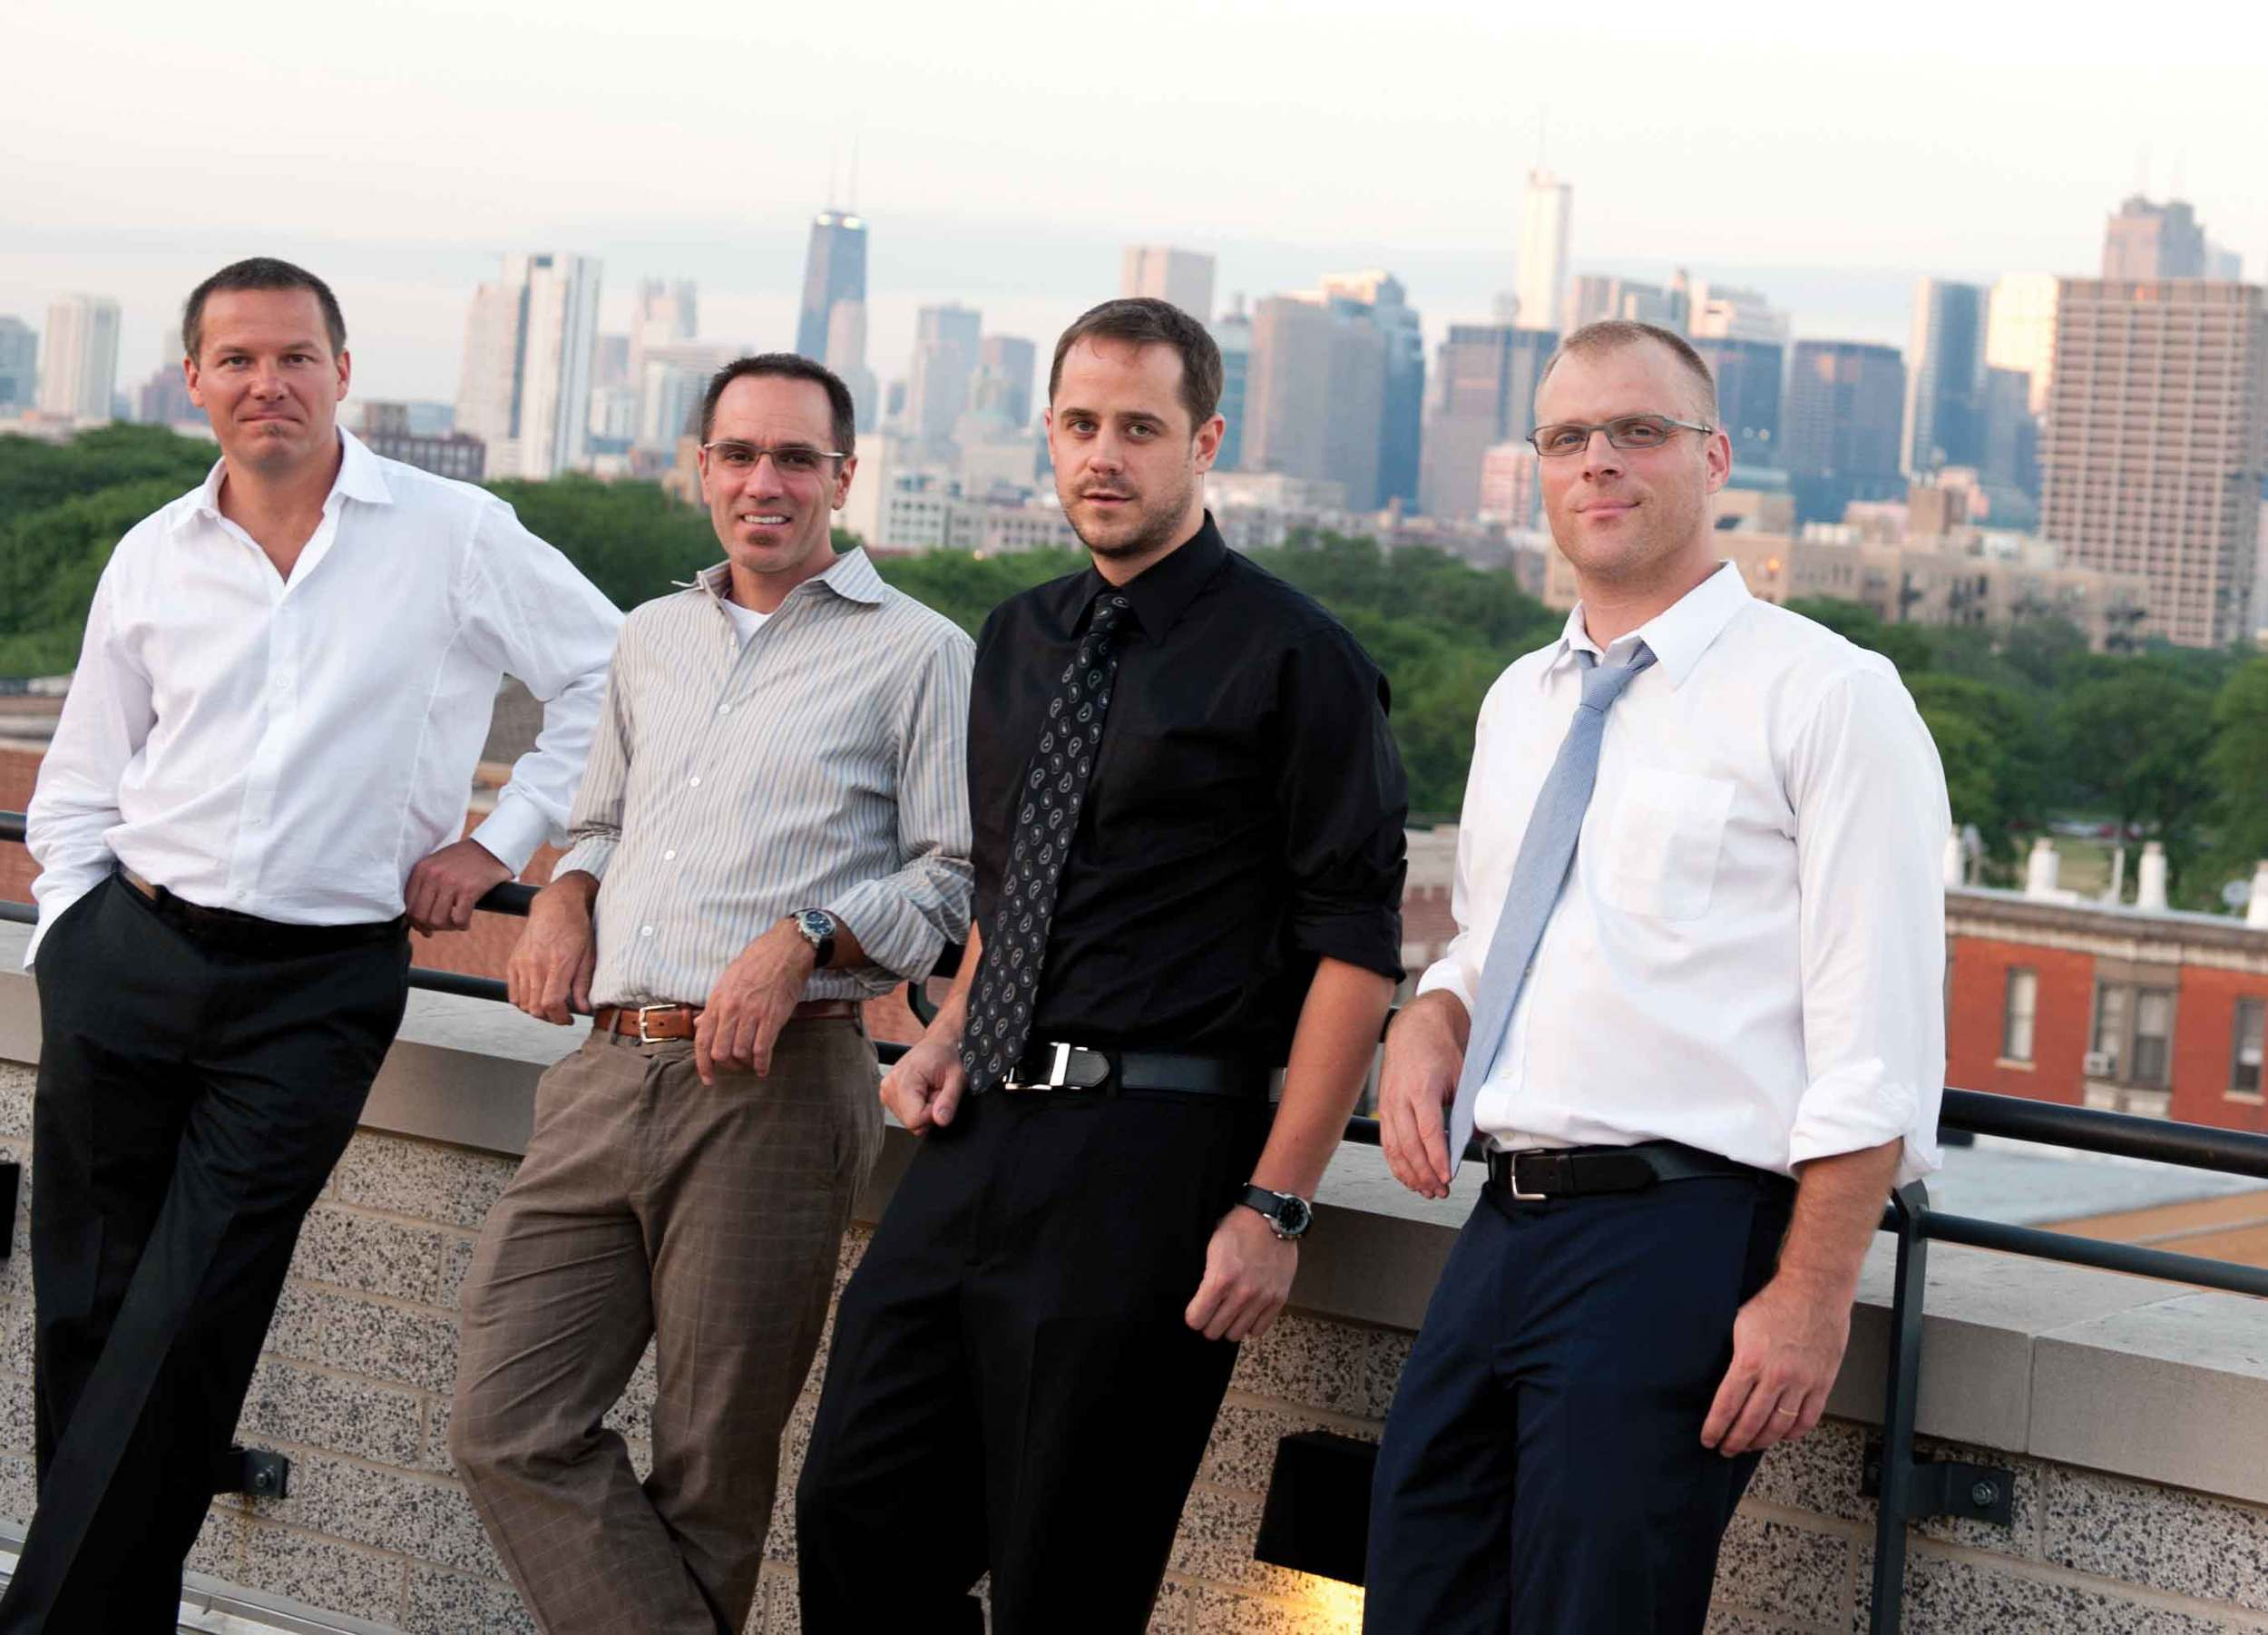 Post wedding with the boys from the band in the 'big city'. Photo courtesy of Darcy Demmel photography.